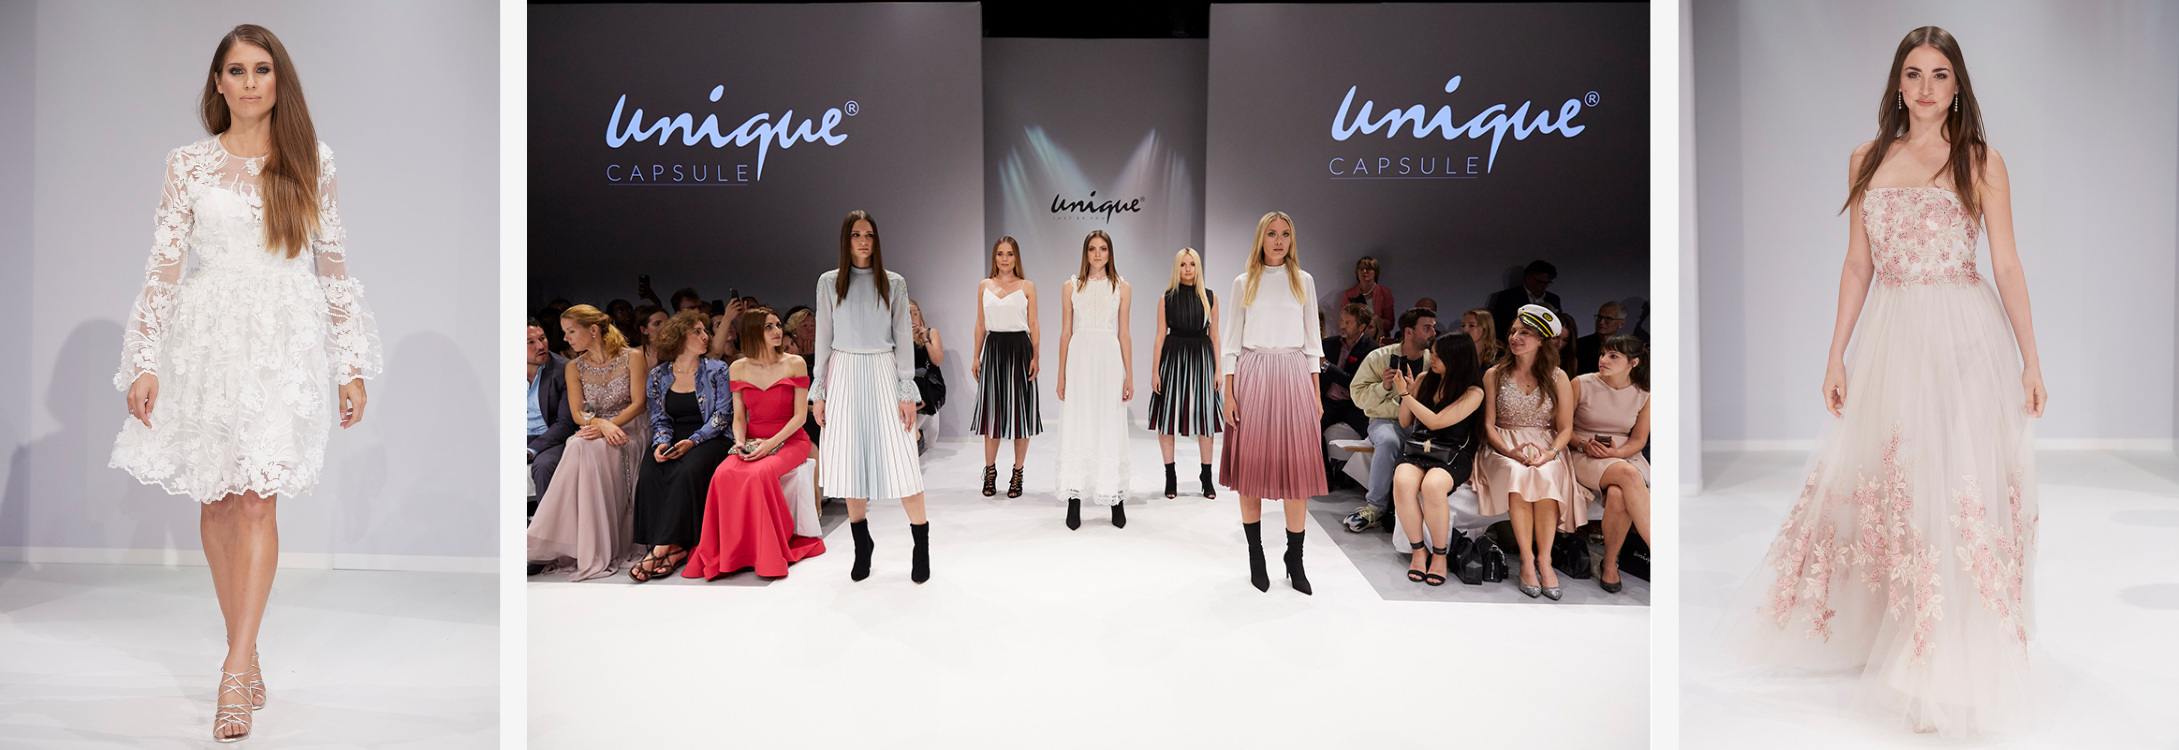 unique_fashionshow_2019_banner1a